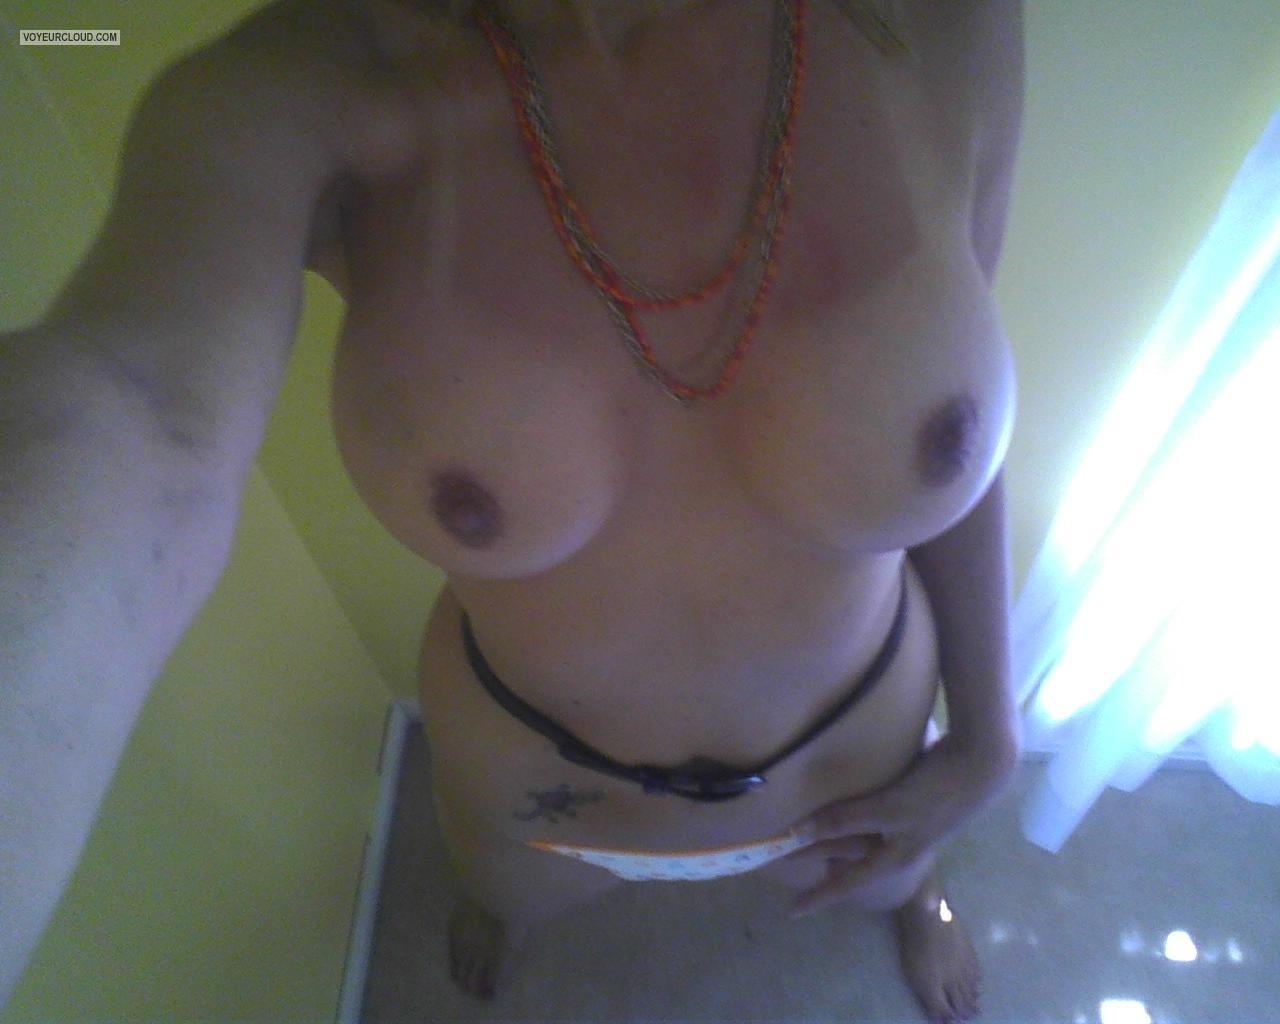 Tit Flash: My Medium Tits - Kellie0girl from United States